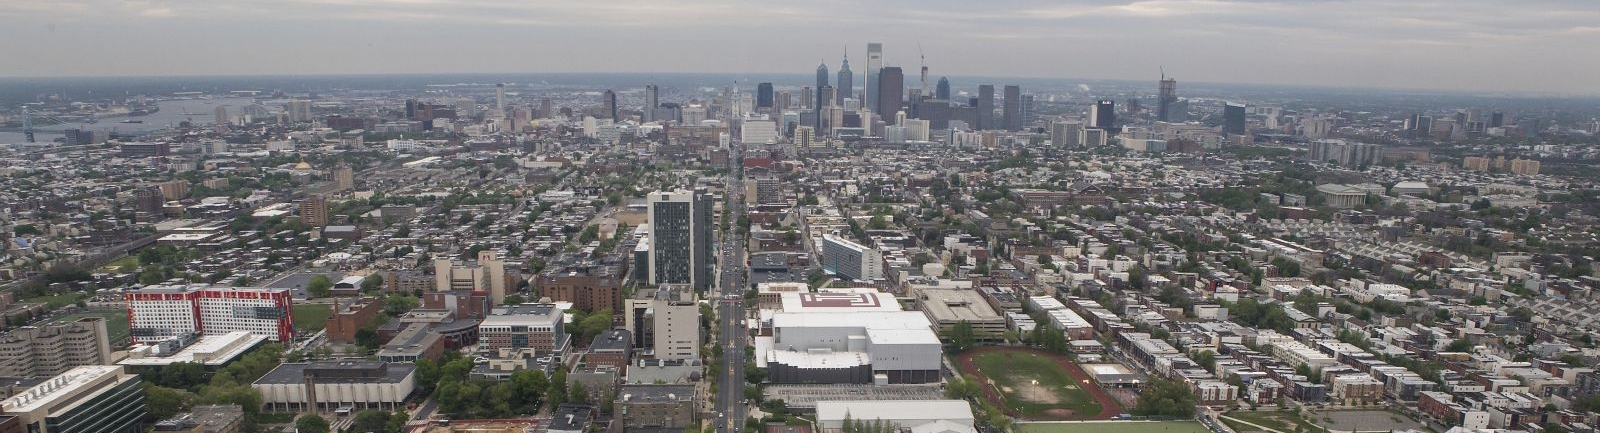 Temple Main Campus with skyline of Philadelphia